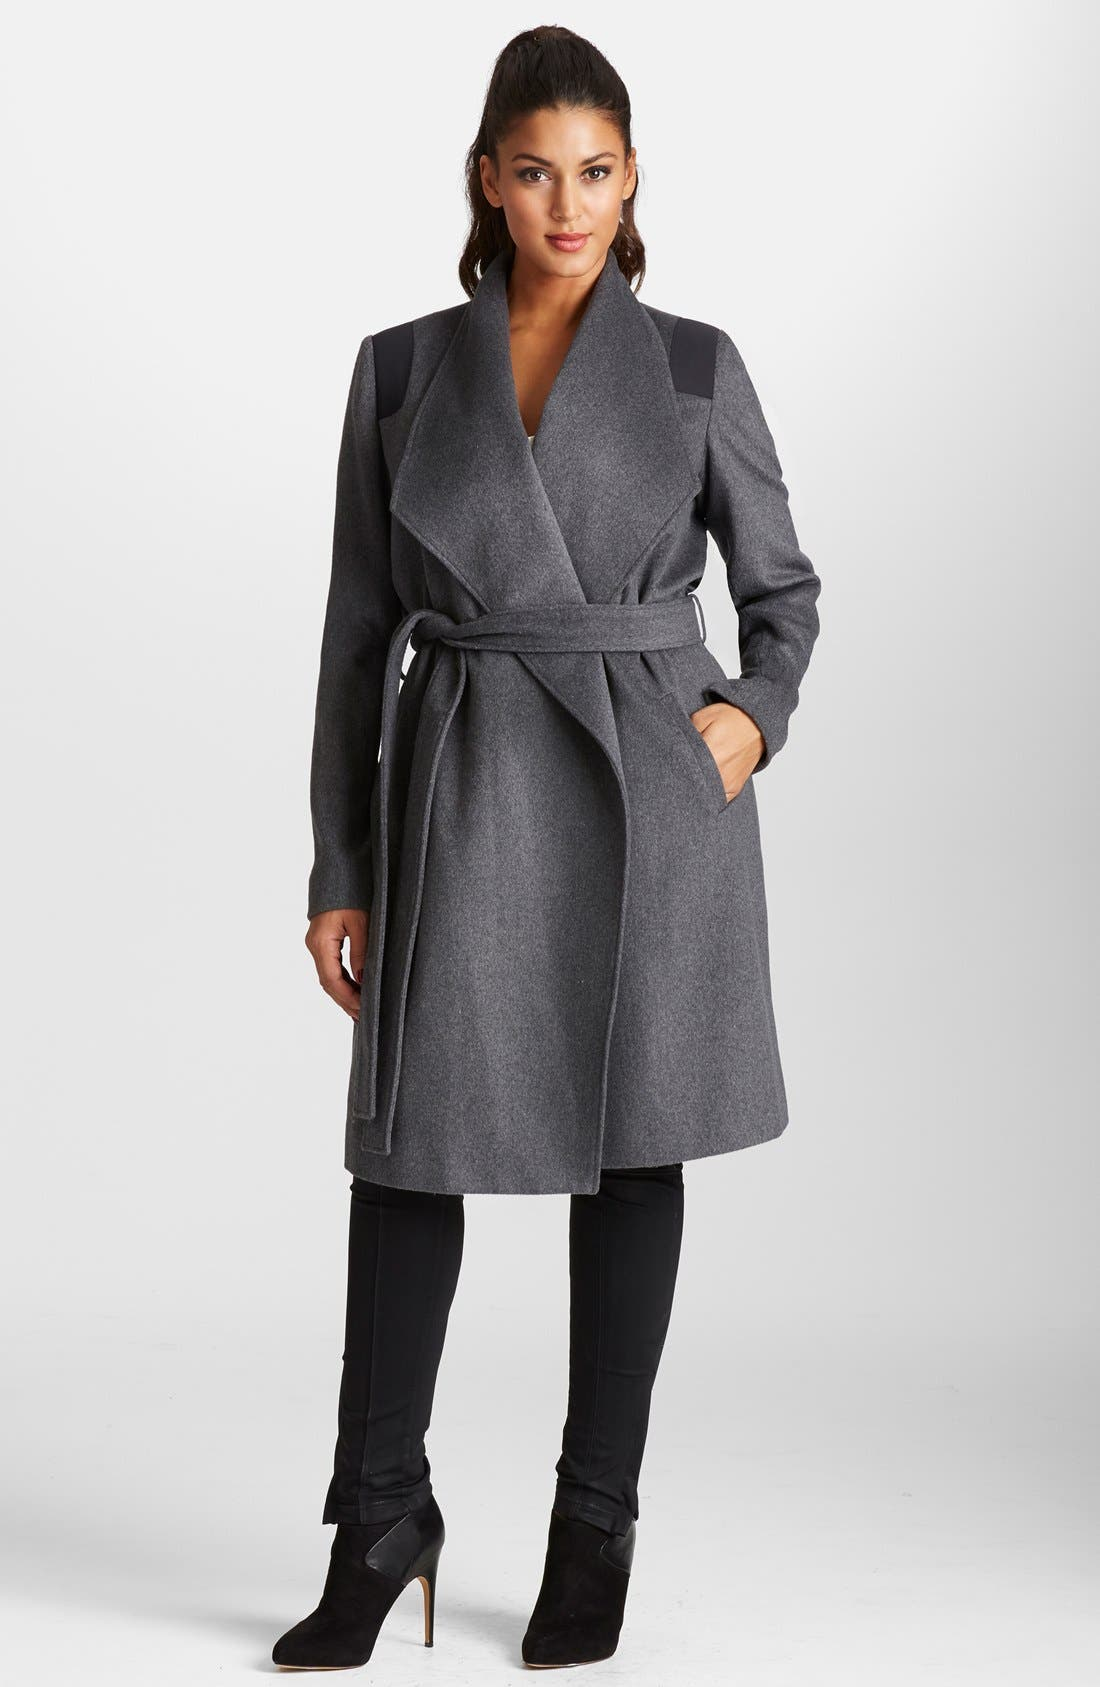 The coat is a smooth wool, and I am sure if would be a good idea to keep a lint brush on hand - but that's with all black wool coats. The neck line is gorgeous. Great buy.